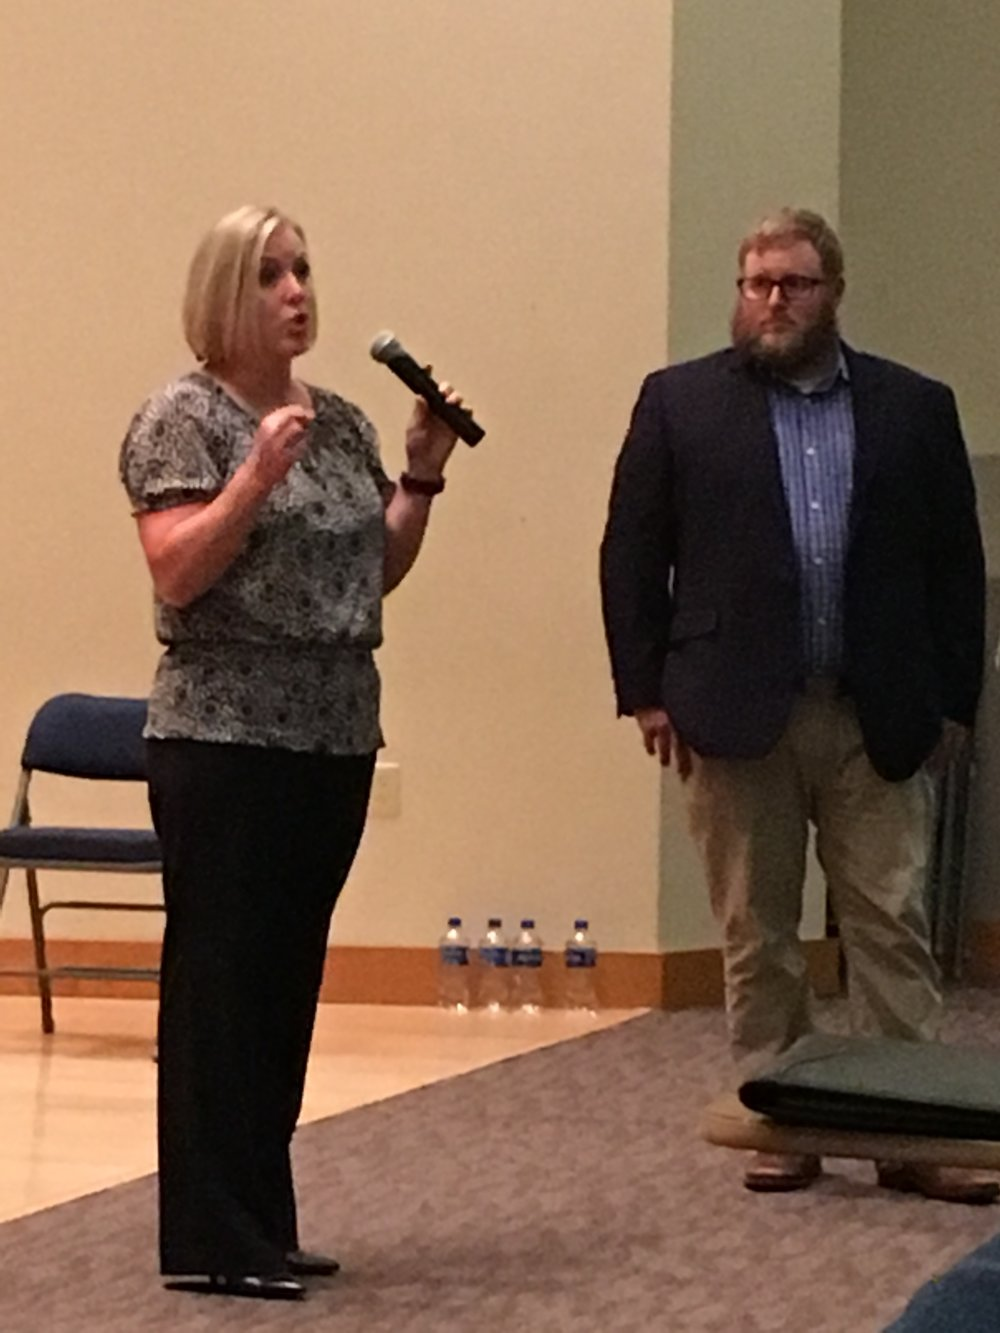 DEA Special Agent, LeAnn Bakr and Pharmacist, Eric Crumbaugh take questions from students